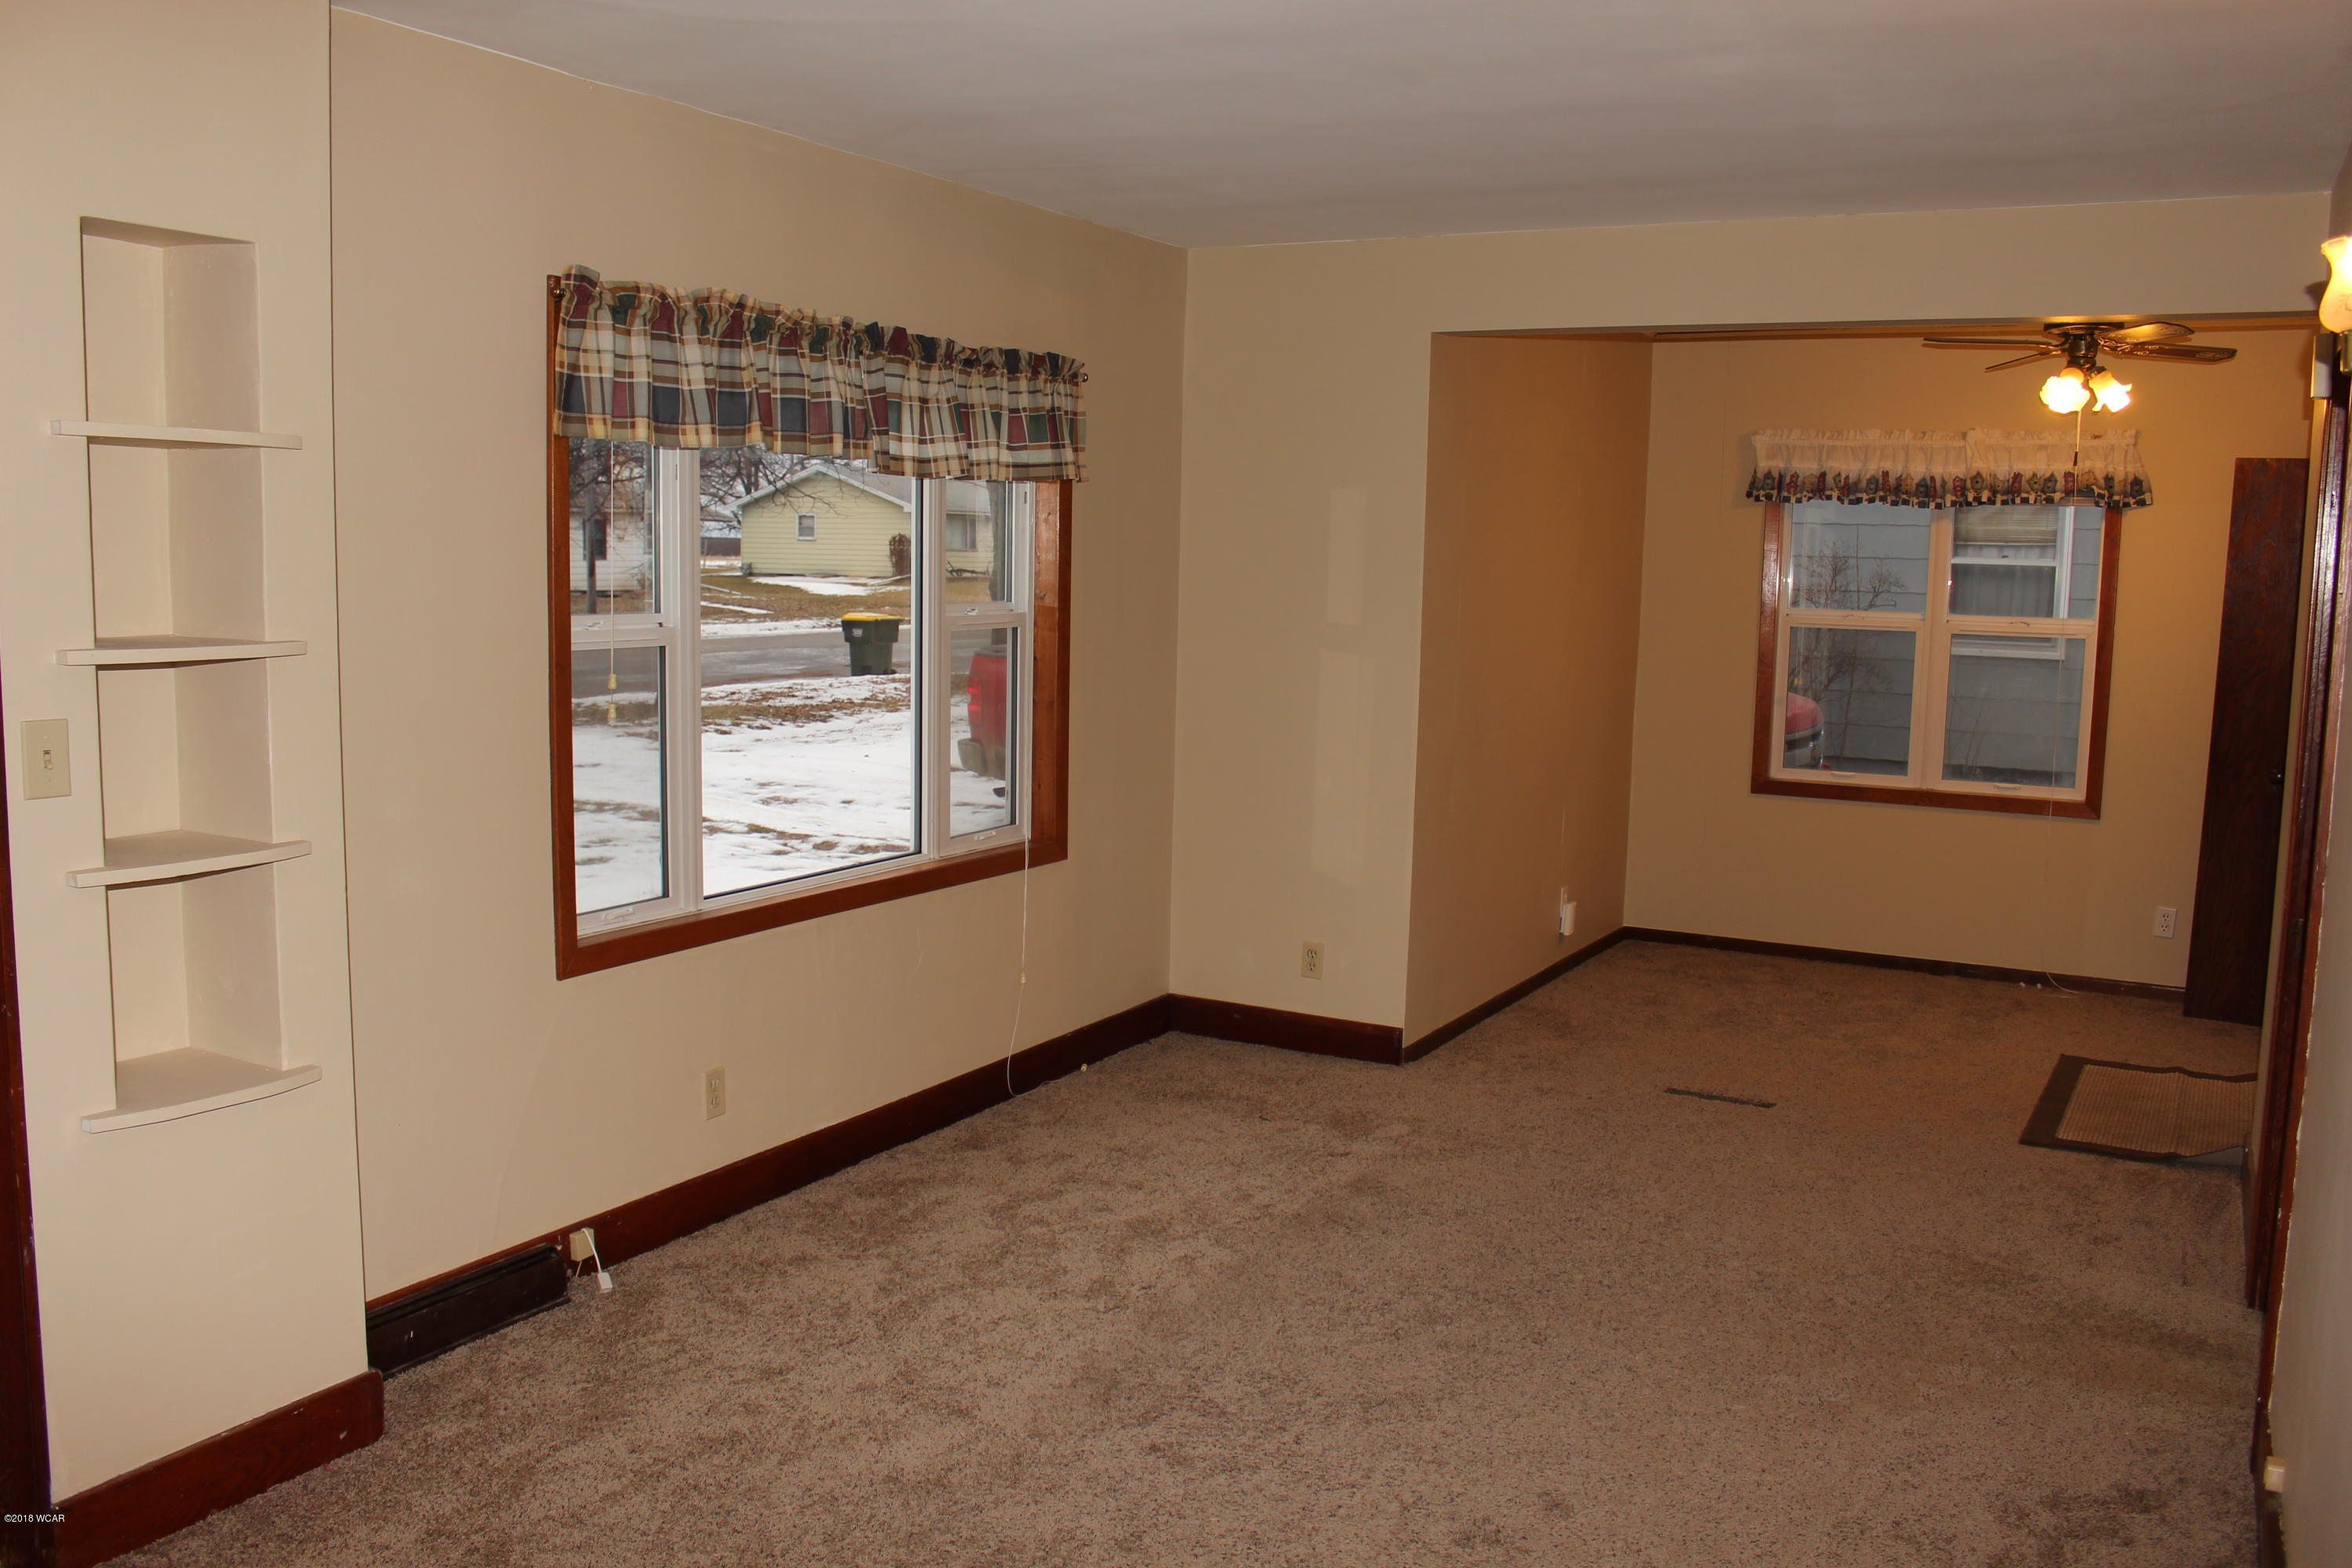 220 Dupont Avenue,Hector,2 Bedrooms Bedrooms,1 BathroomBathrooms,Single Family,Dupont Avenue,6033146